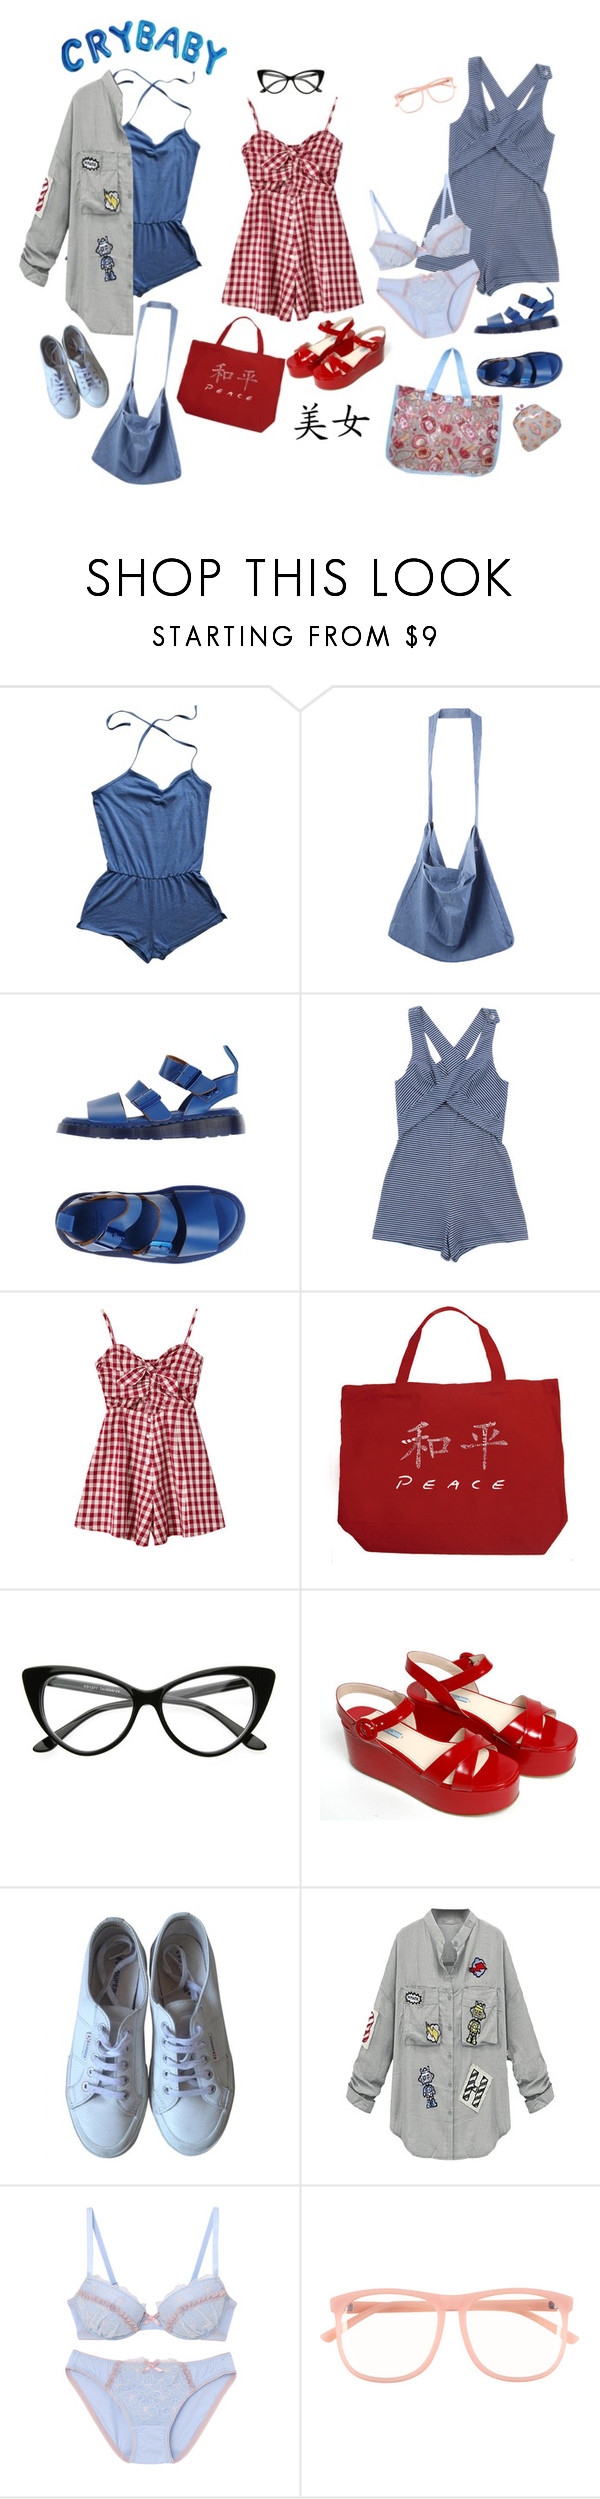 """""""i miss summer"""" by momoheart ❤ liked on Polyvore featuring American Apparel, Dr. Martens, Karen Walker, Chicnova Fashion, Los Angeles Pop Art, Prada, Superga and H&M"""